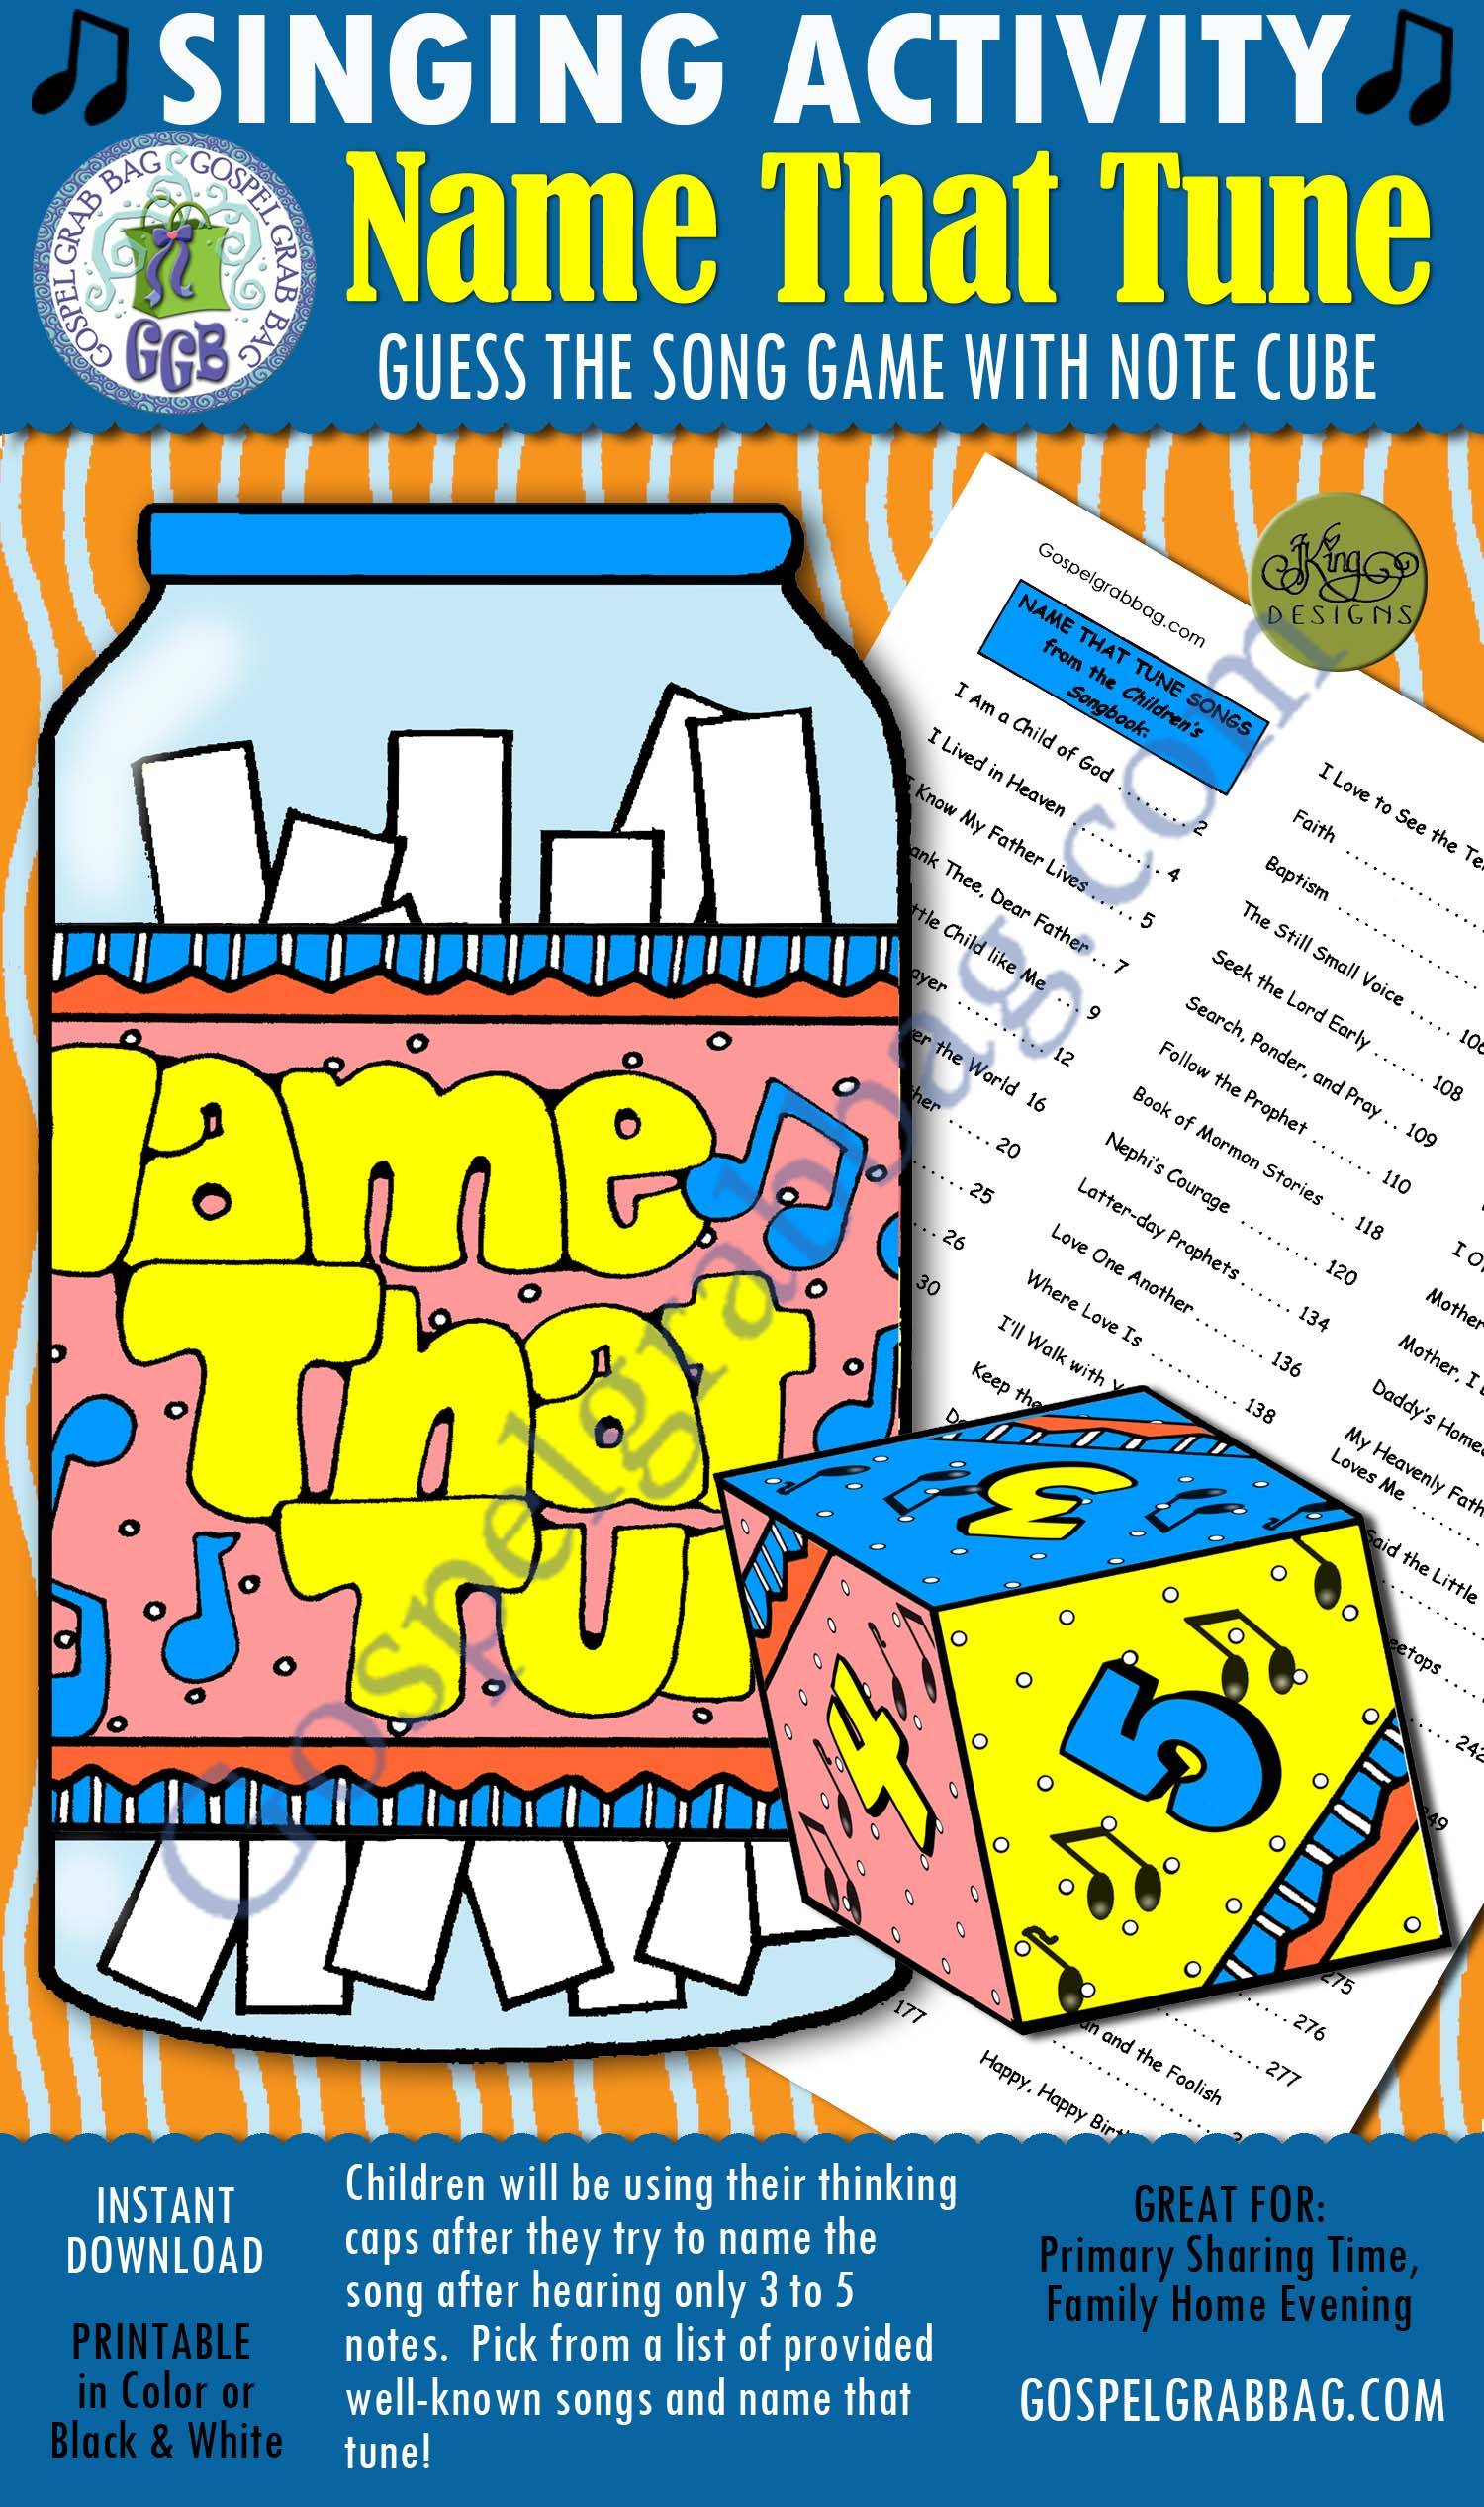 $3.00 NAME THAT TUNE Guess the Song Game with note cube: Primary Music Singing Time Activities to Motivate Children to Sing, download from GospelGrabBag.com